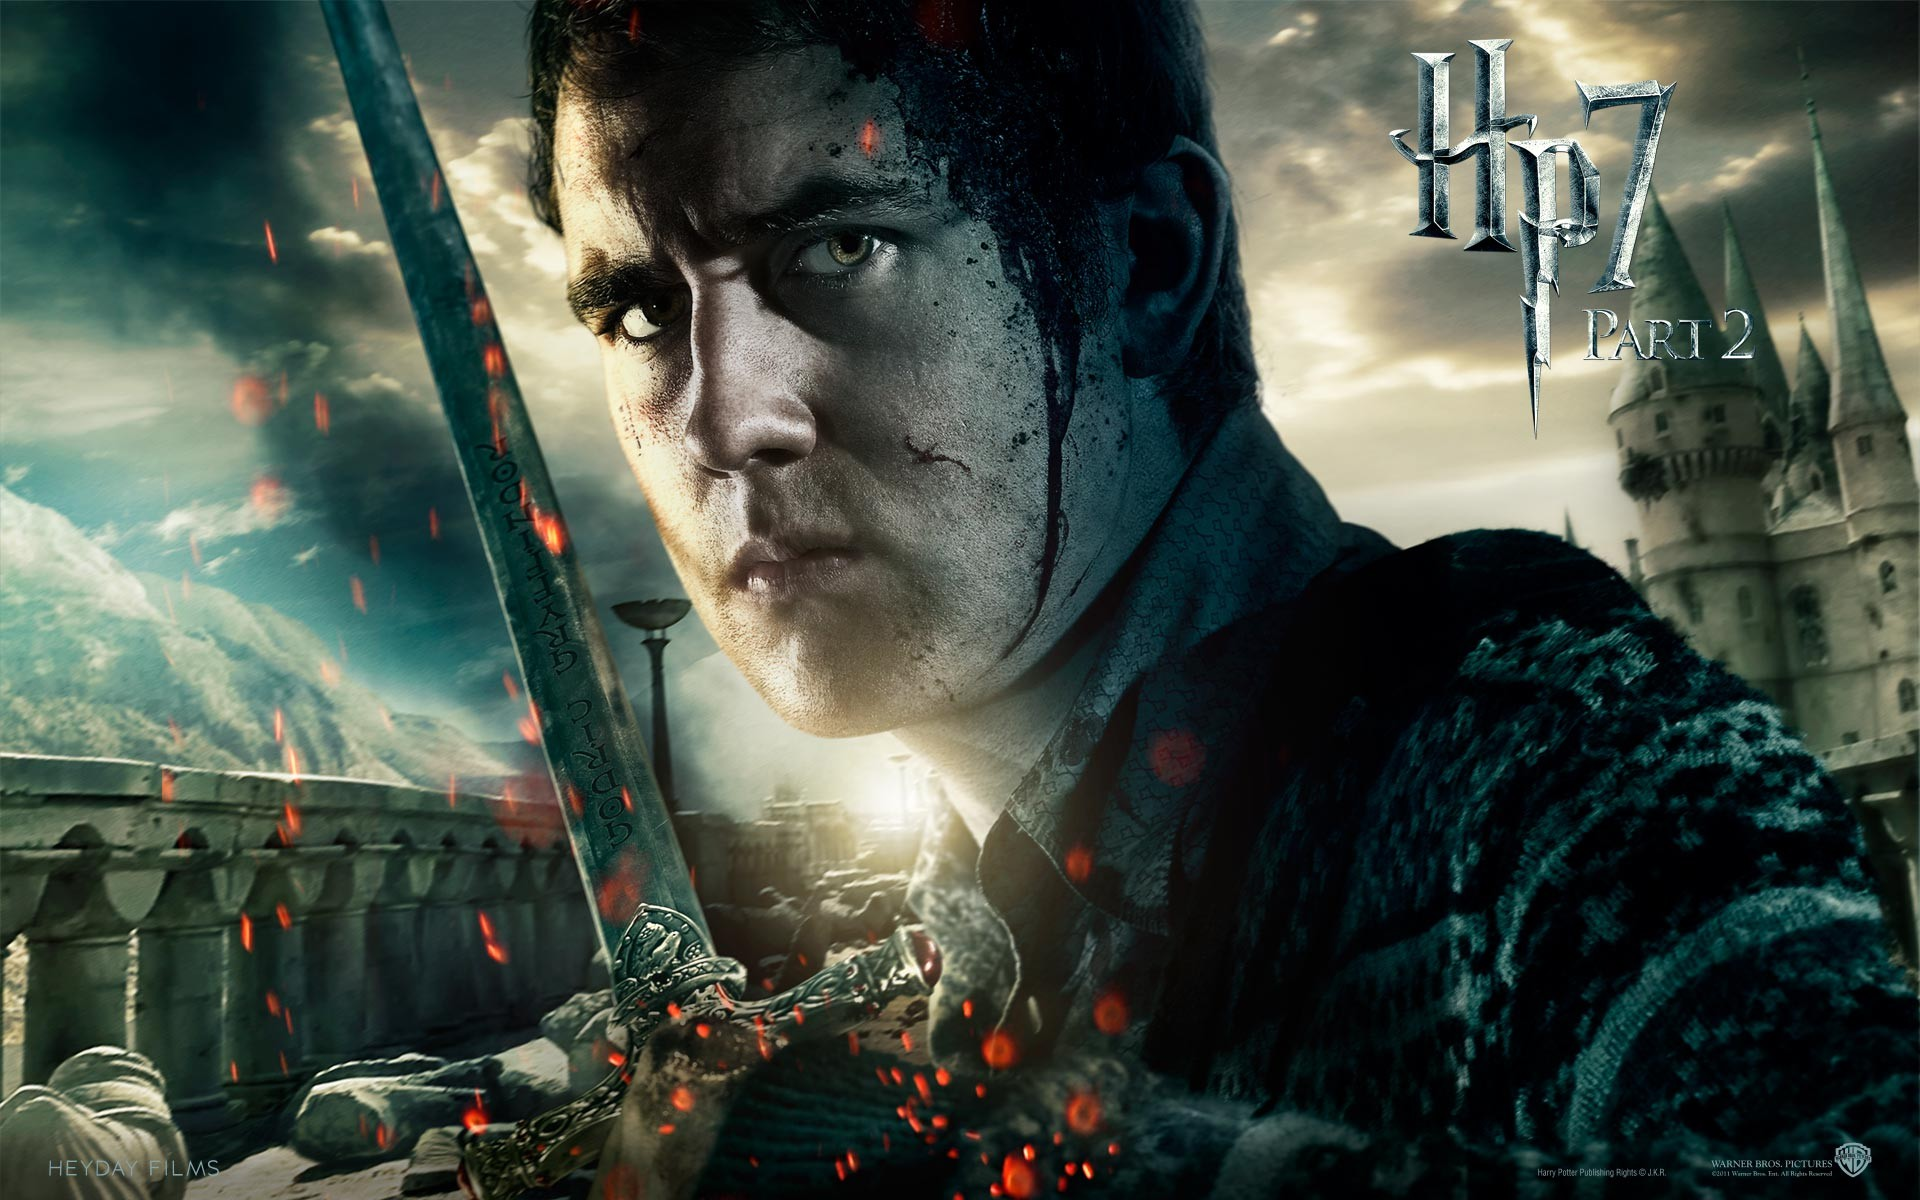 fantasy movies film harry potter magic harry potter and the deathly hallows movie posters. Black Bedroom Furniture Sets. Home Design Ideas